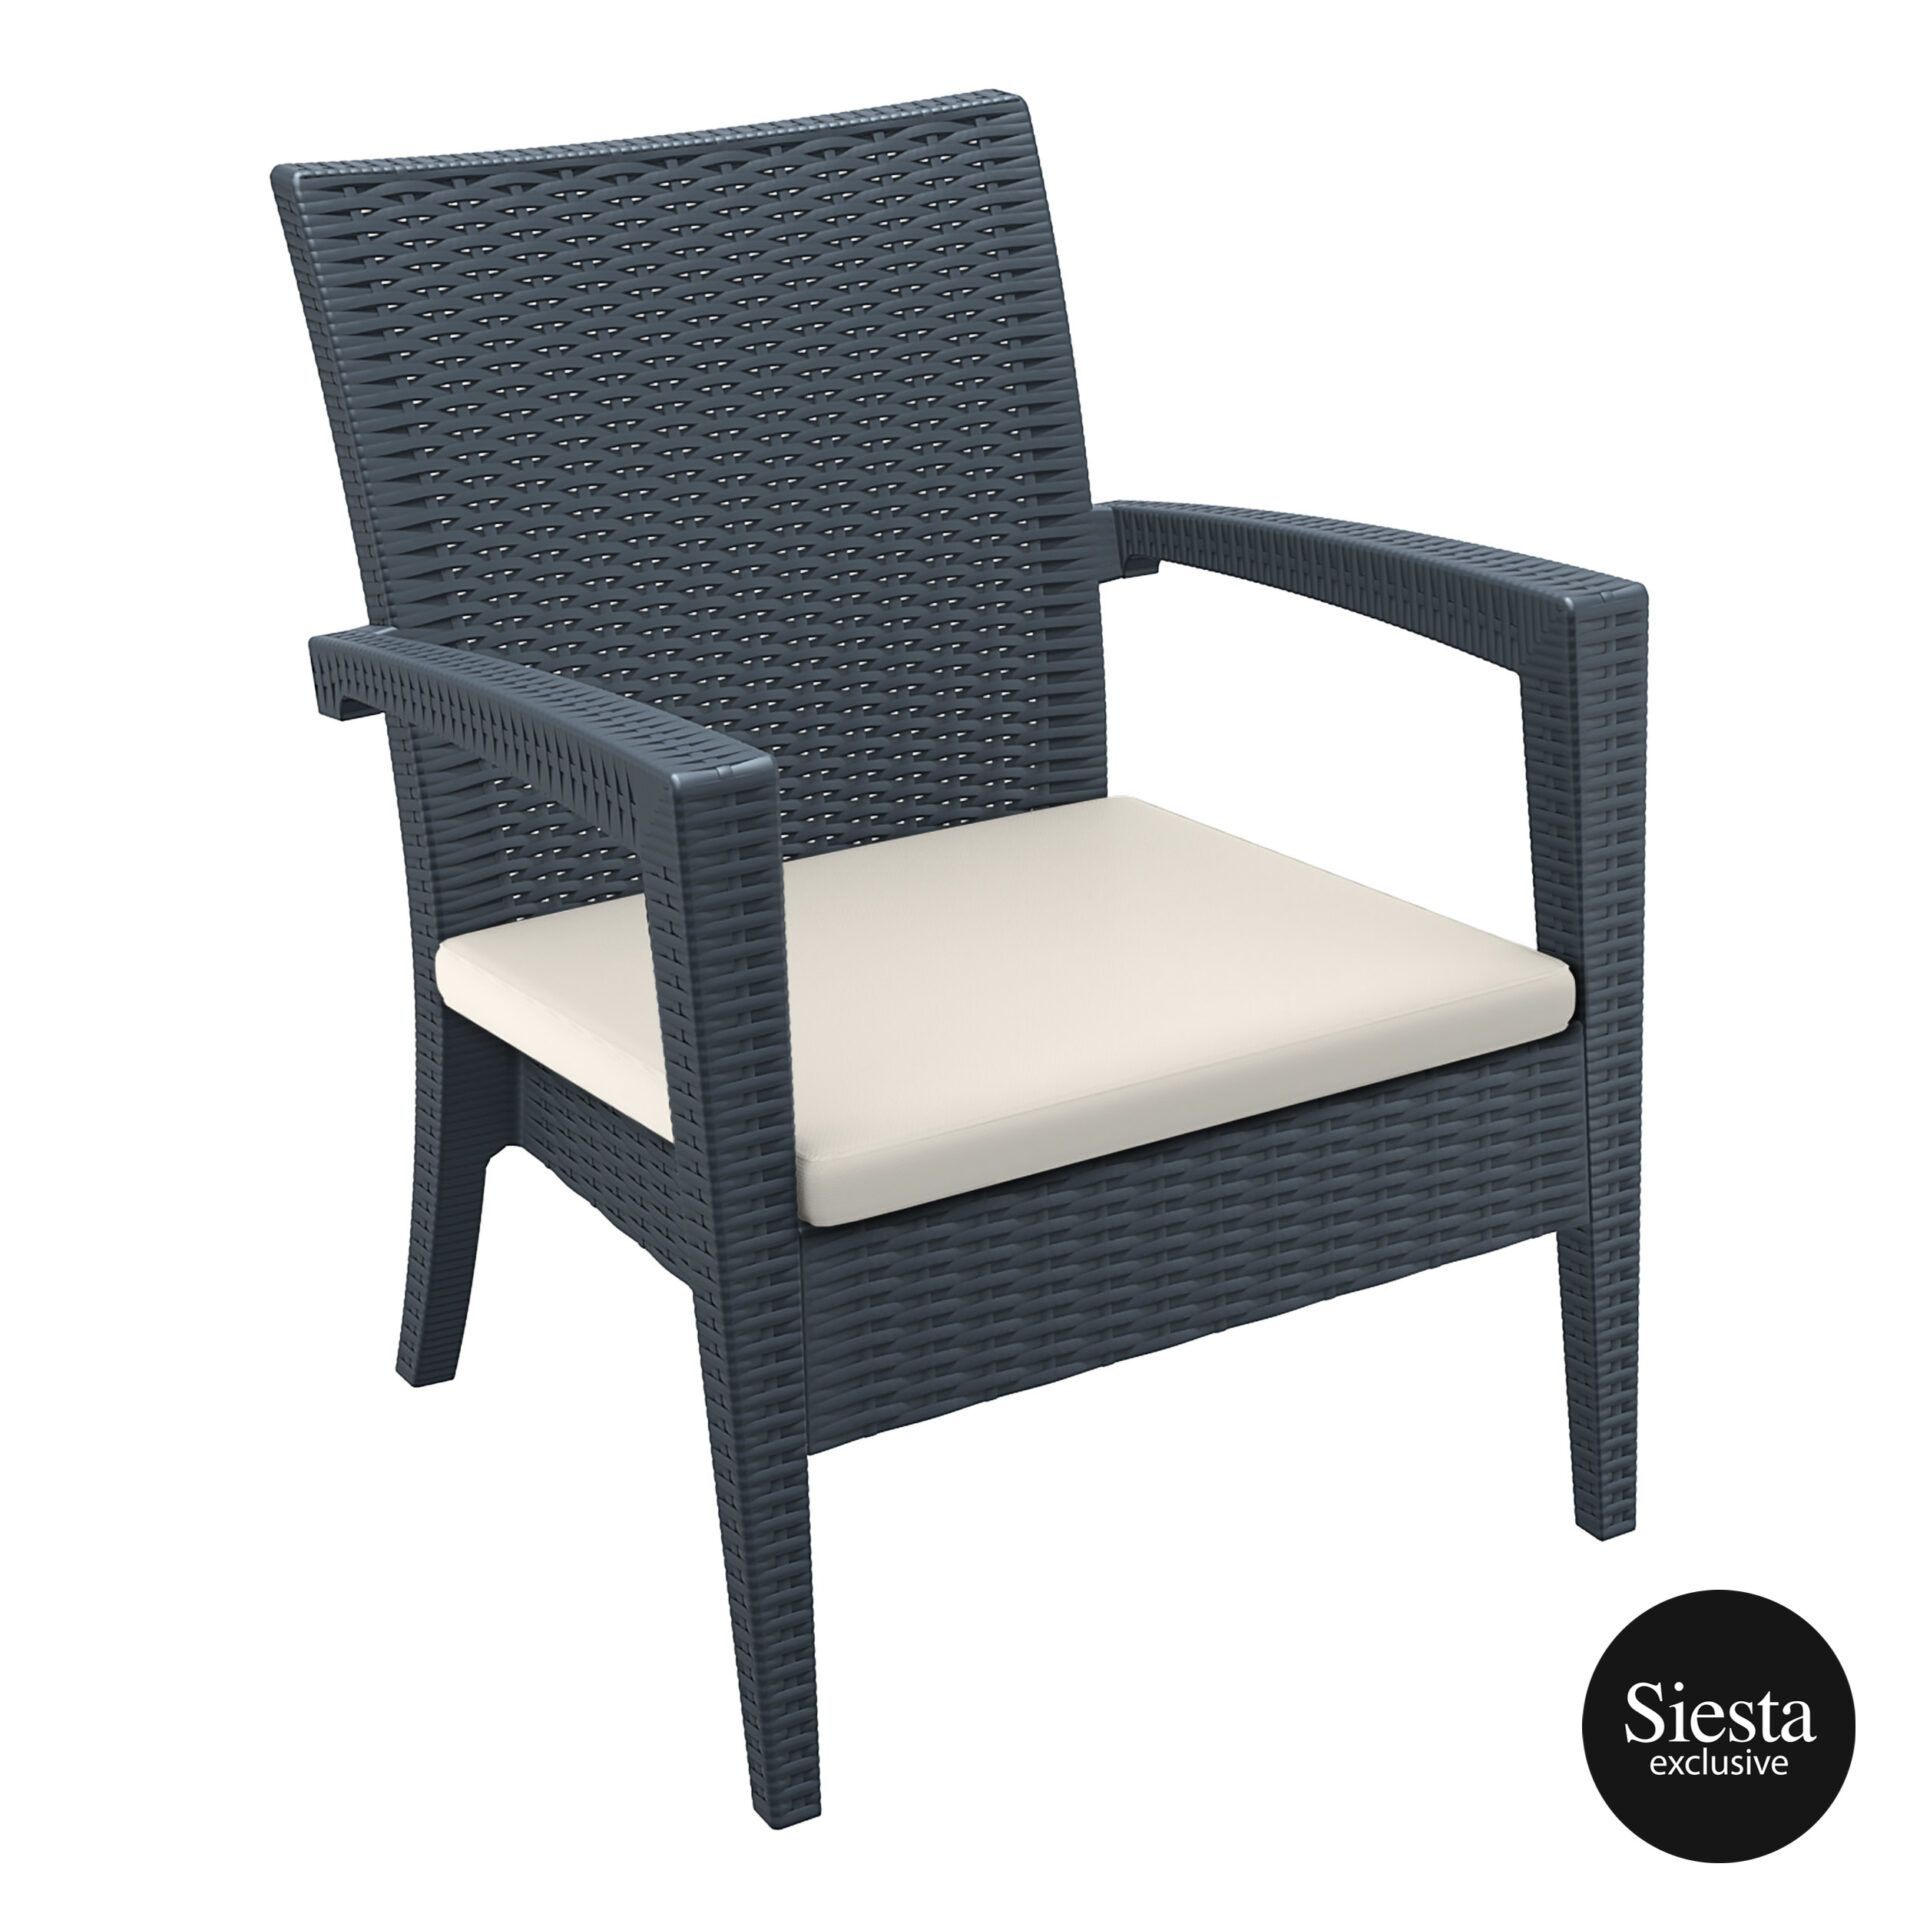 Resin Rattan Miami Tequila Lounge armchair cushion darkgrey front side